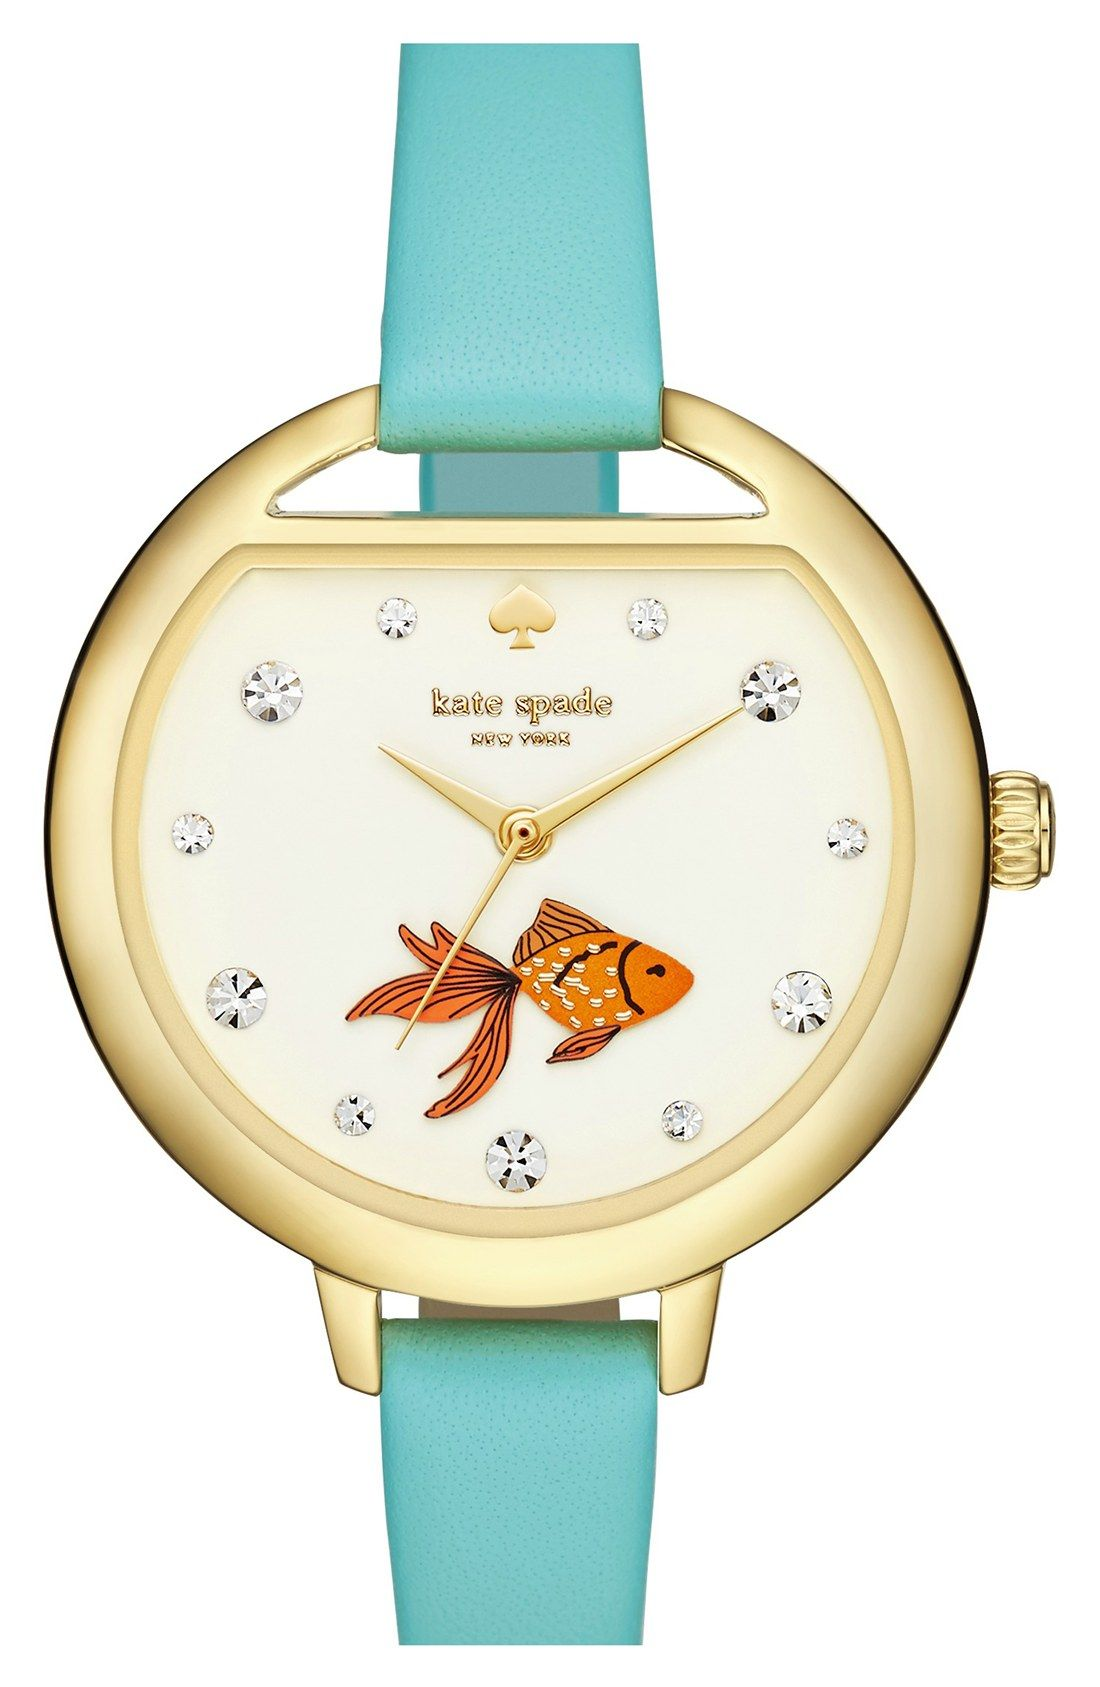 This 'fishbowl' watch from Kate Spade is truly adorable ...